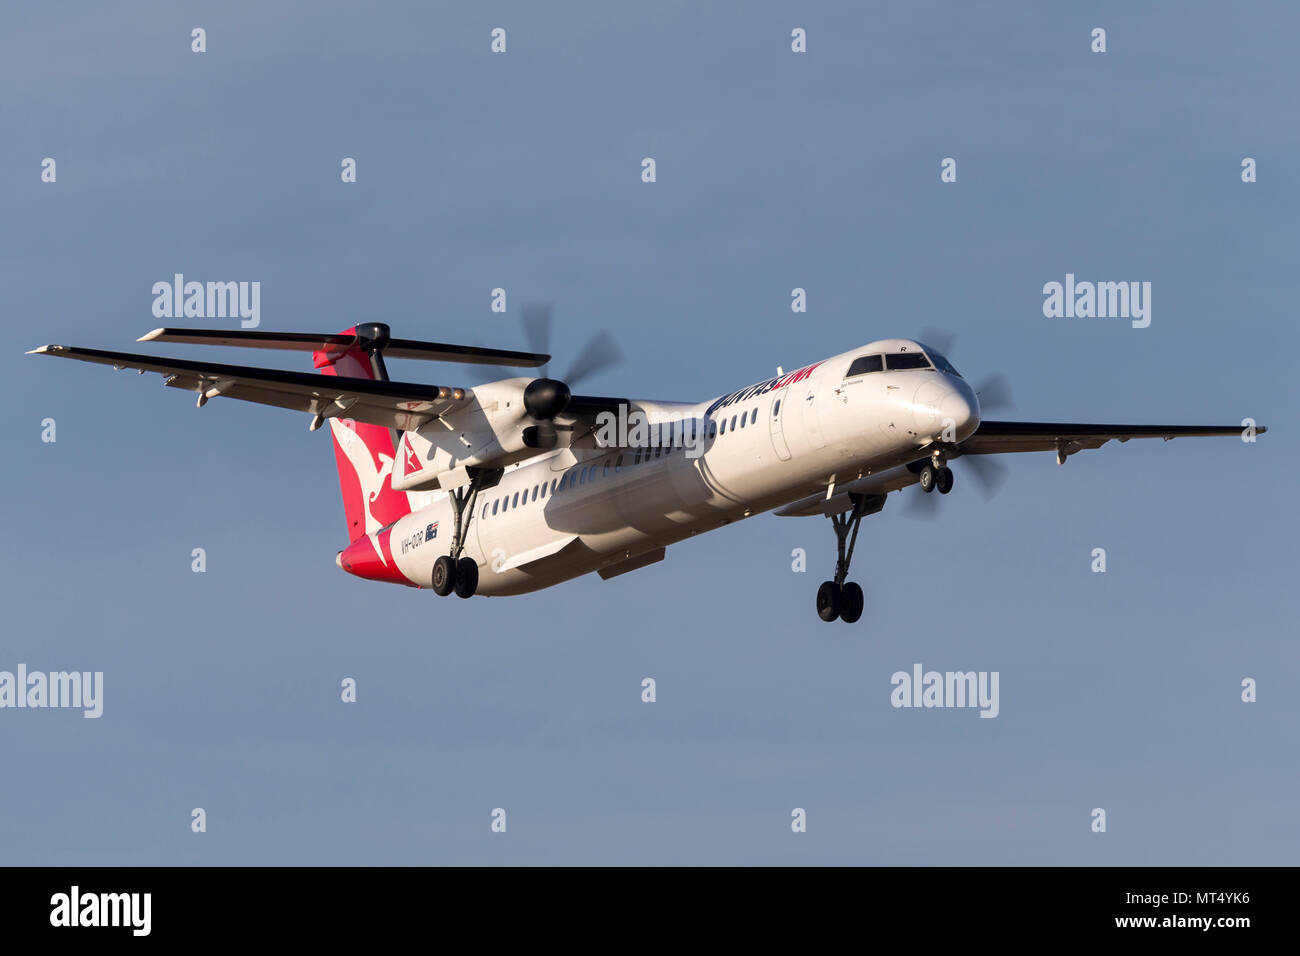 QantasLink De Havilland Canada DHC-8-402Q VH-QOR regional airliner on approach to land at Melbourne International Airport. - Stock Image